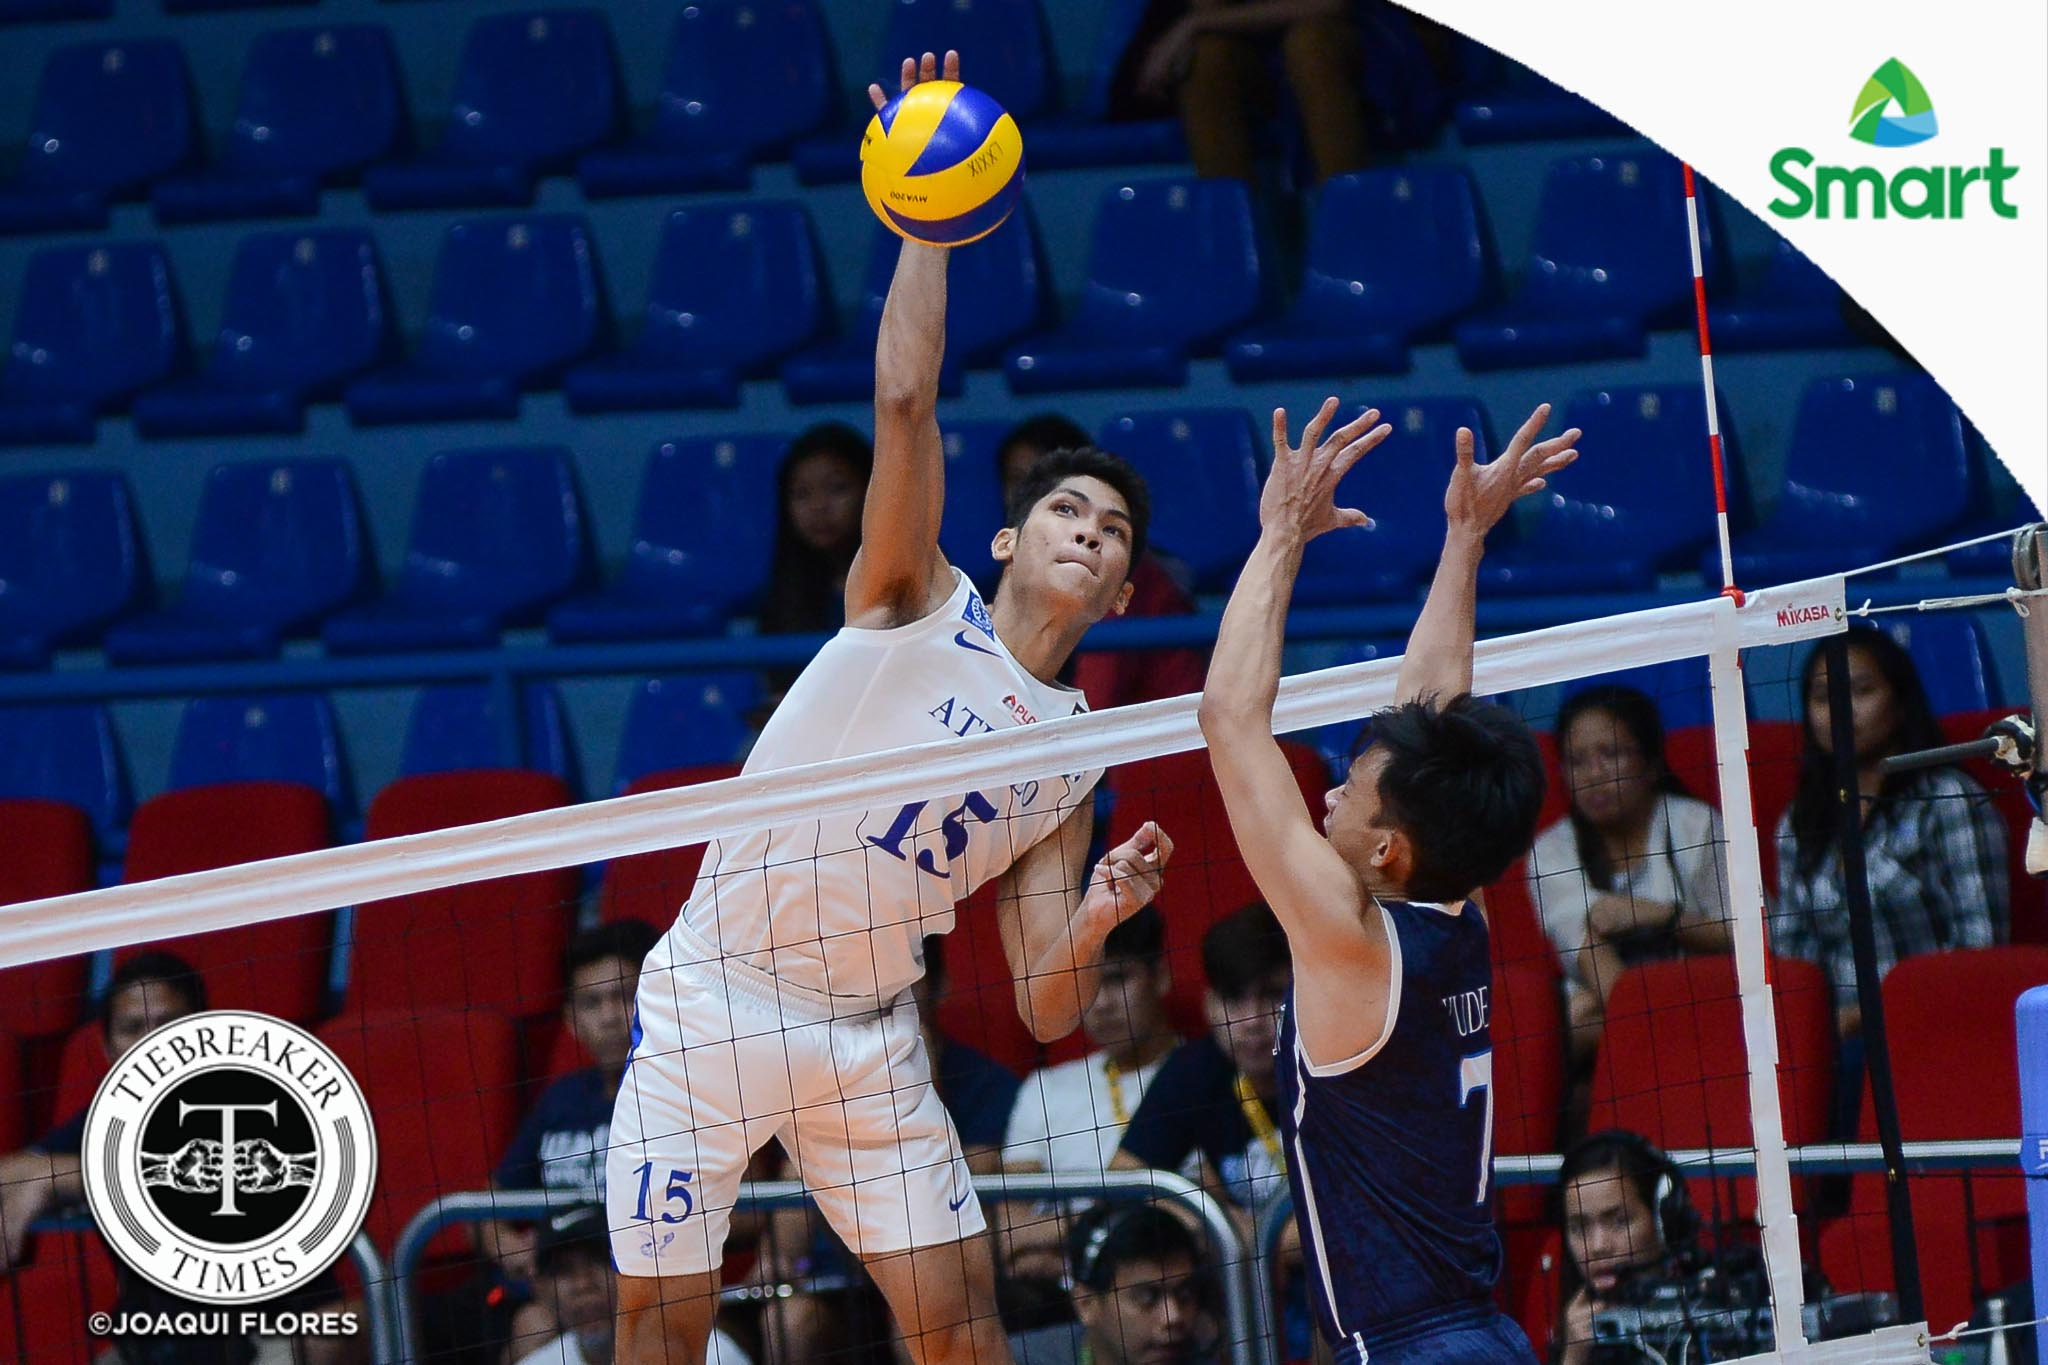 Tiebreaker Times Blue Eagles sweep season series over Soaring Falcons ADMU AdU News UAAP Volleyball  UAAP Season 79 Men's Volleyball UAAP Season 79 Rex Intal Oliver Almadro Marck Espejo Manuel Sumanguid JP Yude Jerome Sarmiento Ish Polvorosa Domingo Custodio Ateneo Men's Volleyball Adamson Men's Volleyball